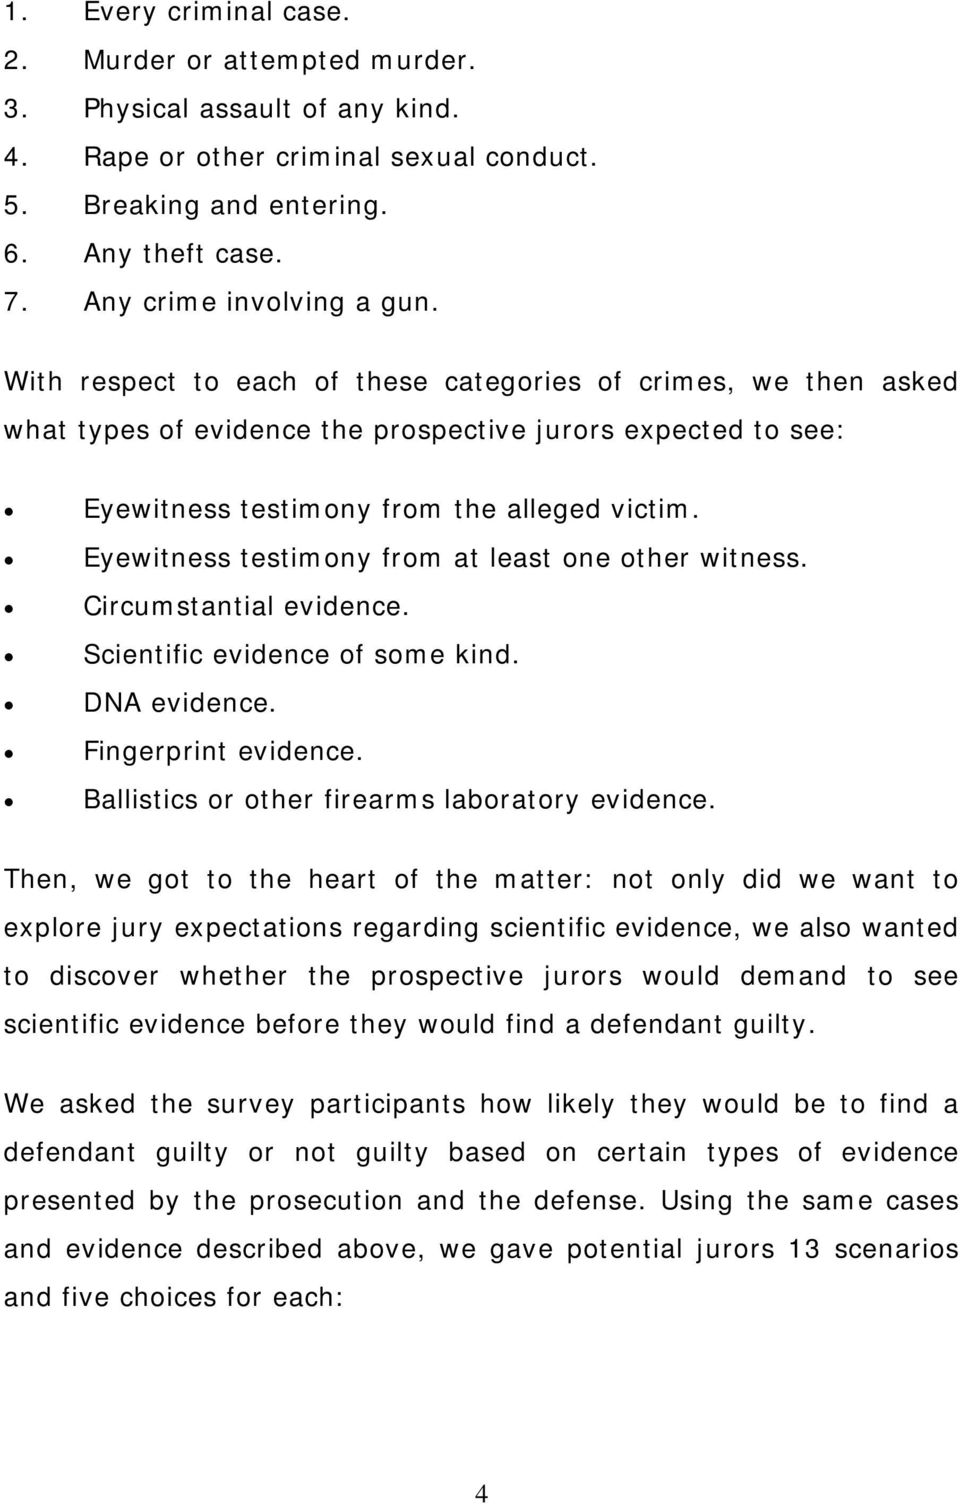 With respect to each of these categories of crimes, we then asked what types of evidence the prospective jurors expected to see: Eyewitness testimony from the alleged victim.